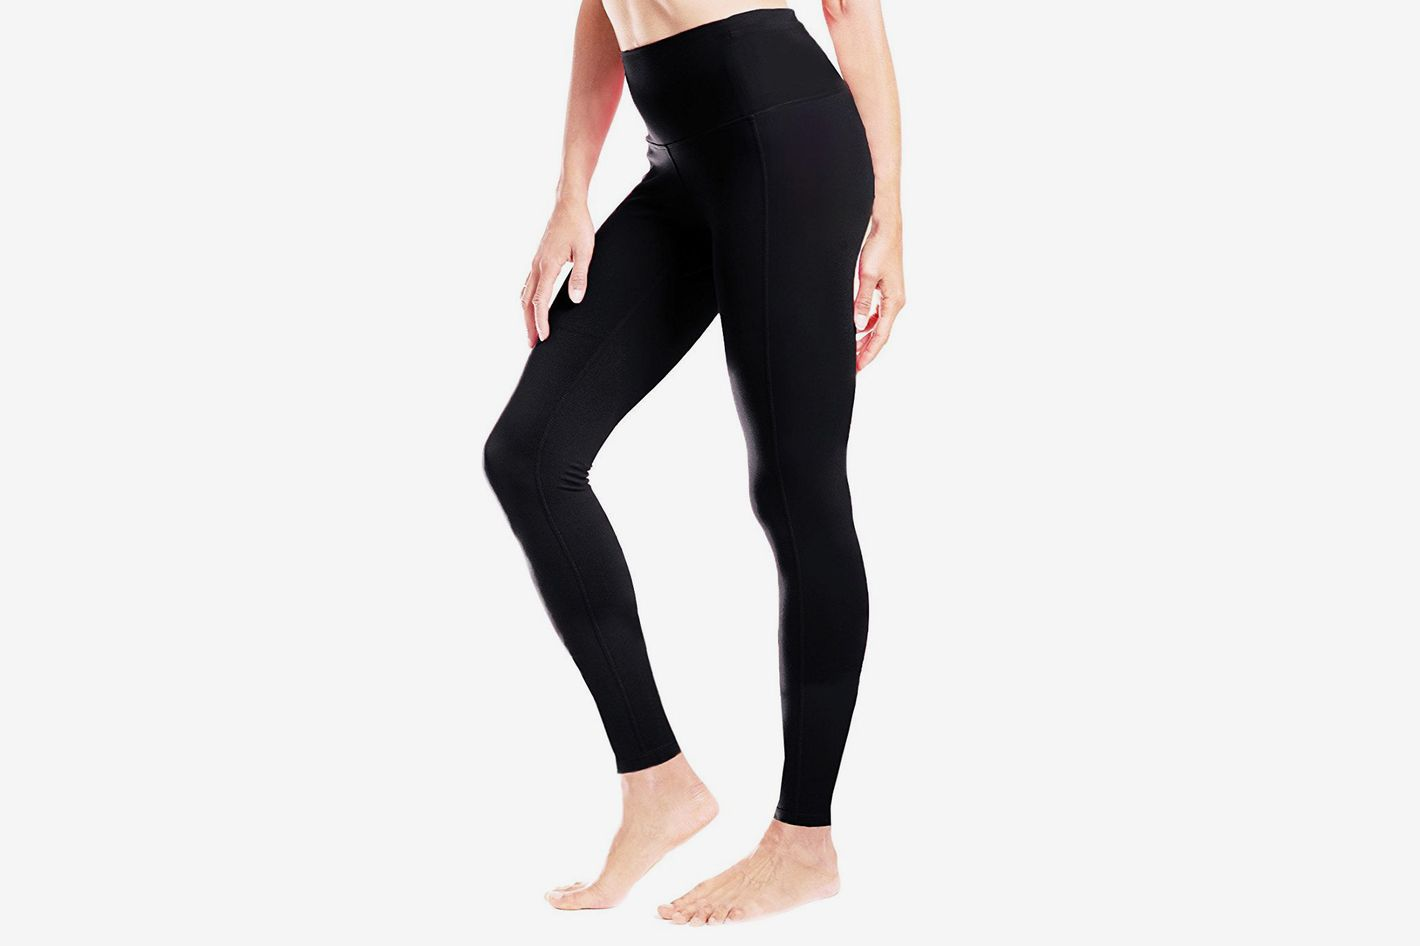 Yogipace Petite Length High Waisted Yoga Leggings